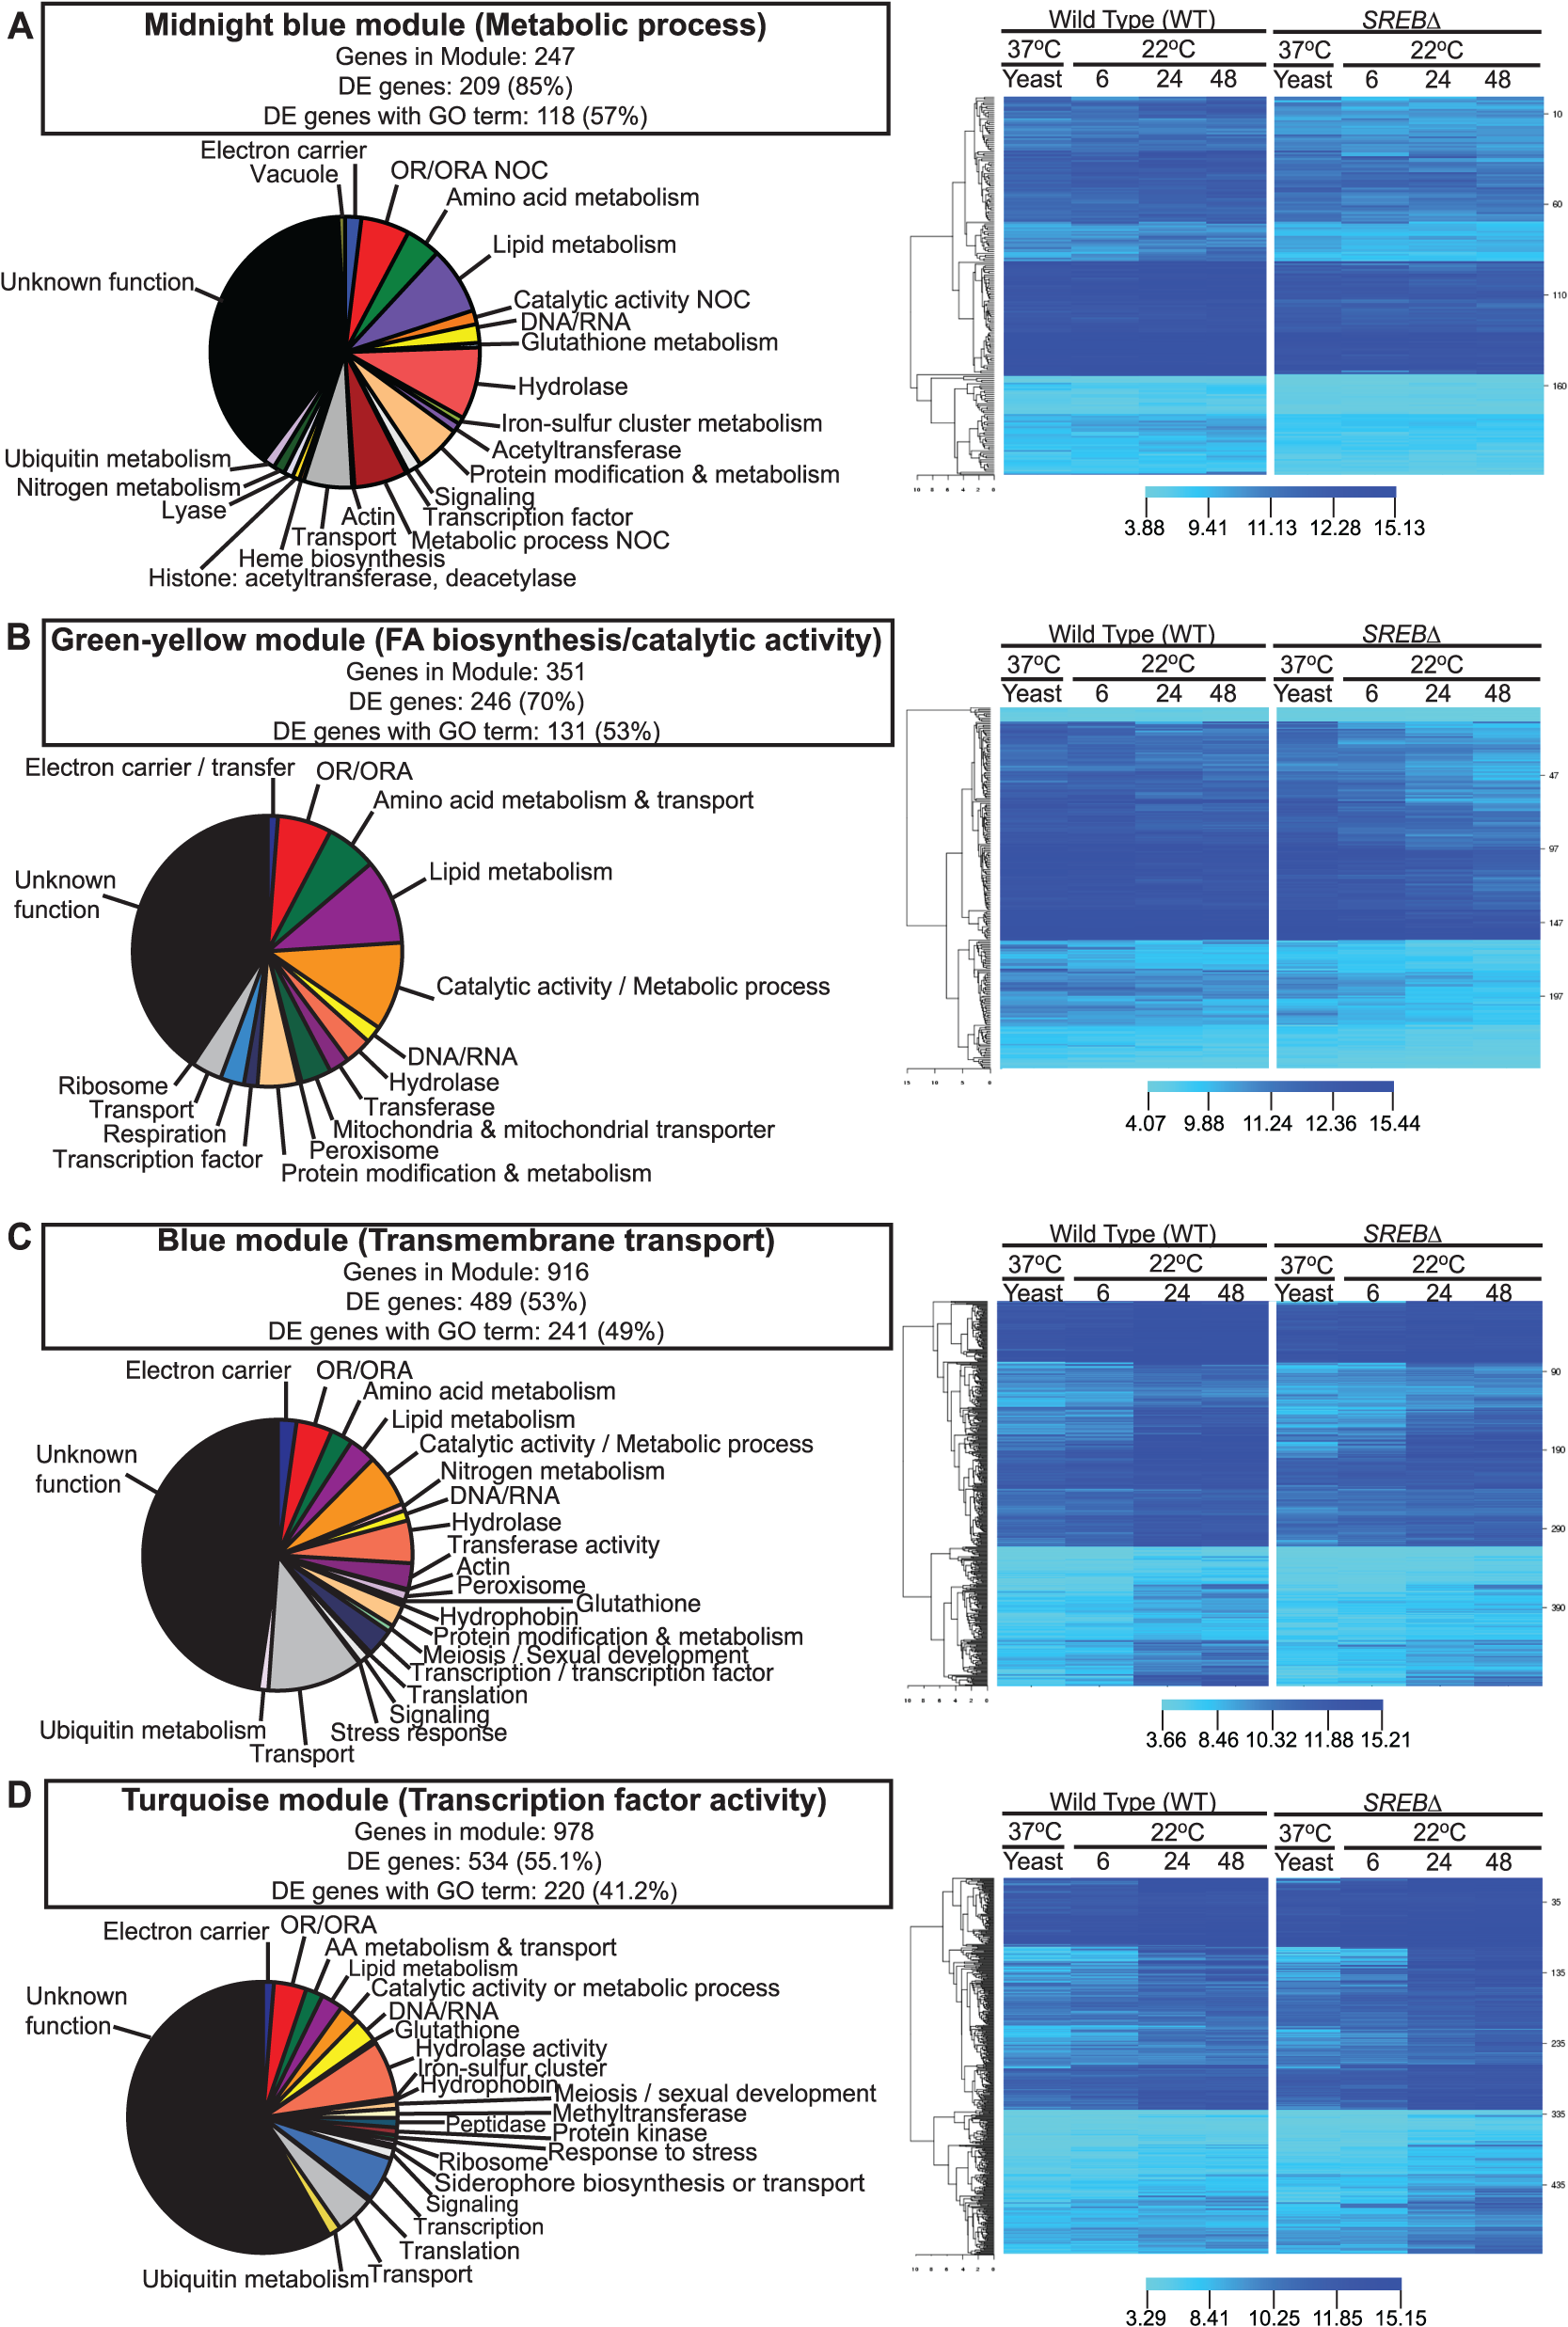 Weighted gene co-expression network analysis (WGCNA).